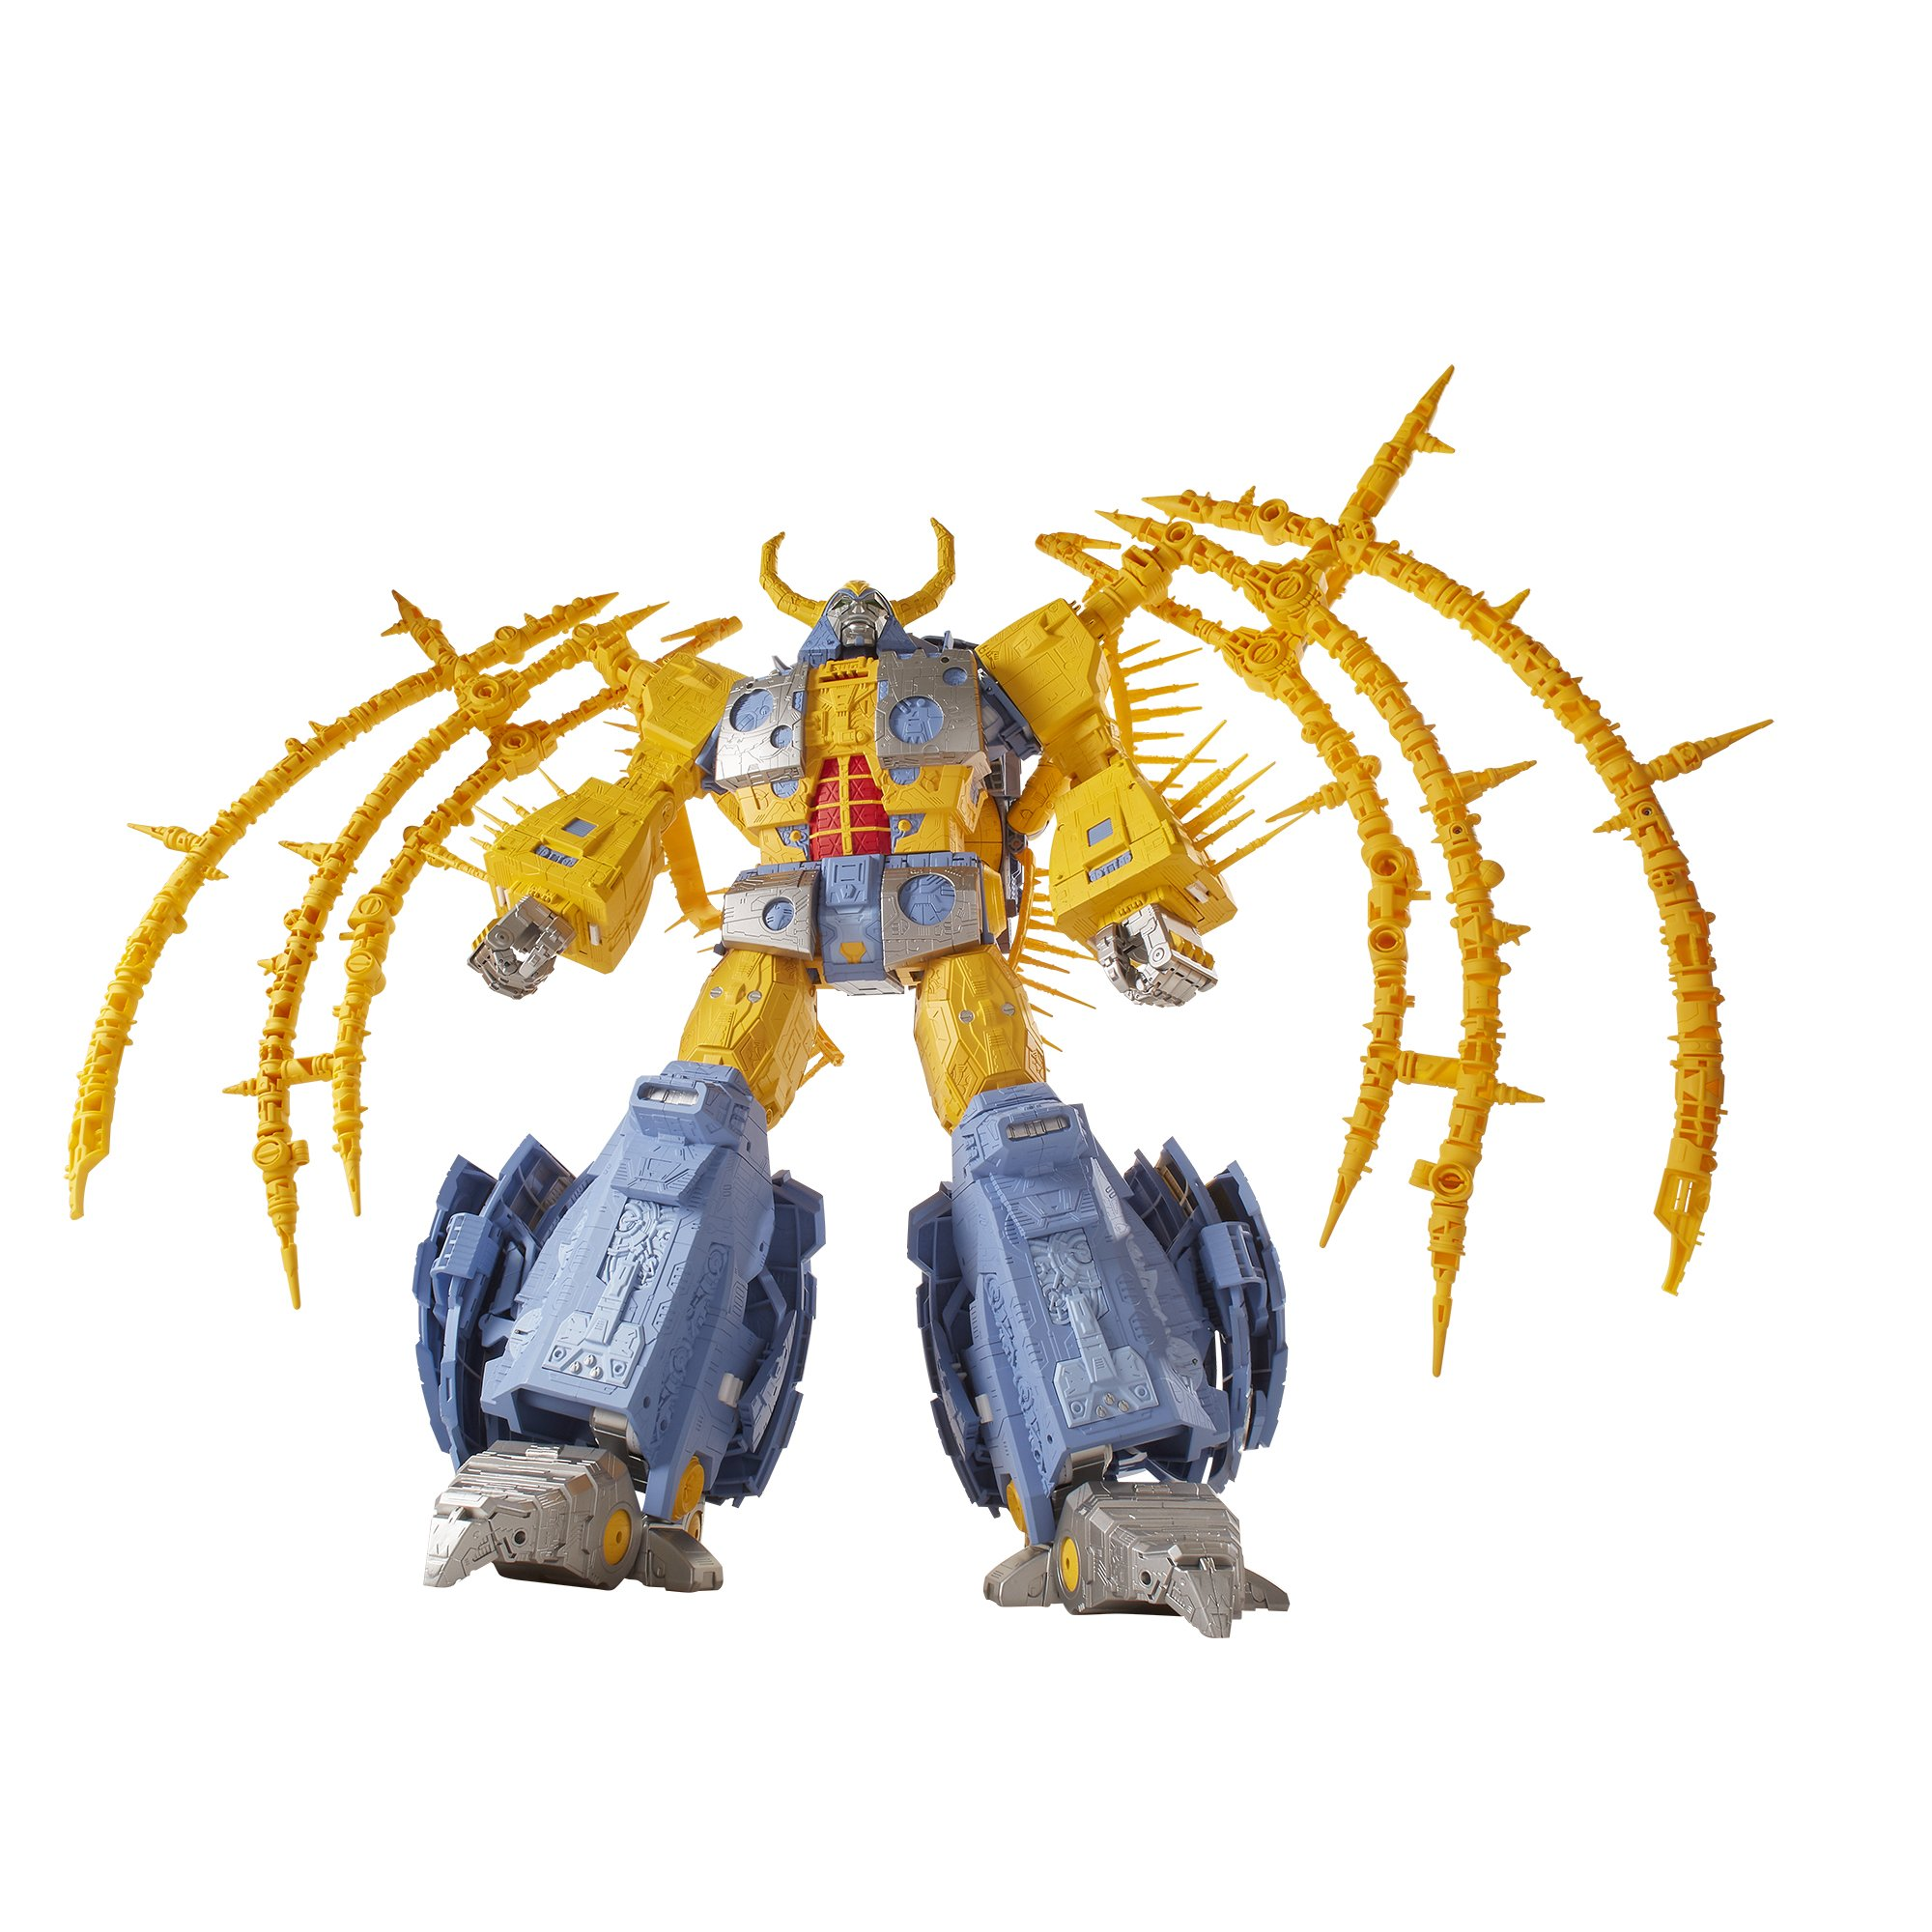 Hasbro's Unicron, the planet-eating robot from the Transformers movie in the 1980s. It hopes to bring the 27-inch tall yellow toy to life, but only if 8.000 people pay them $575 first.